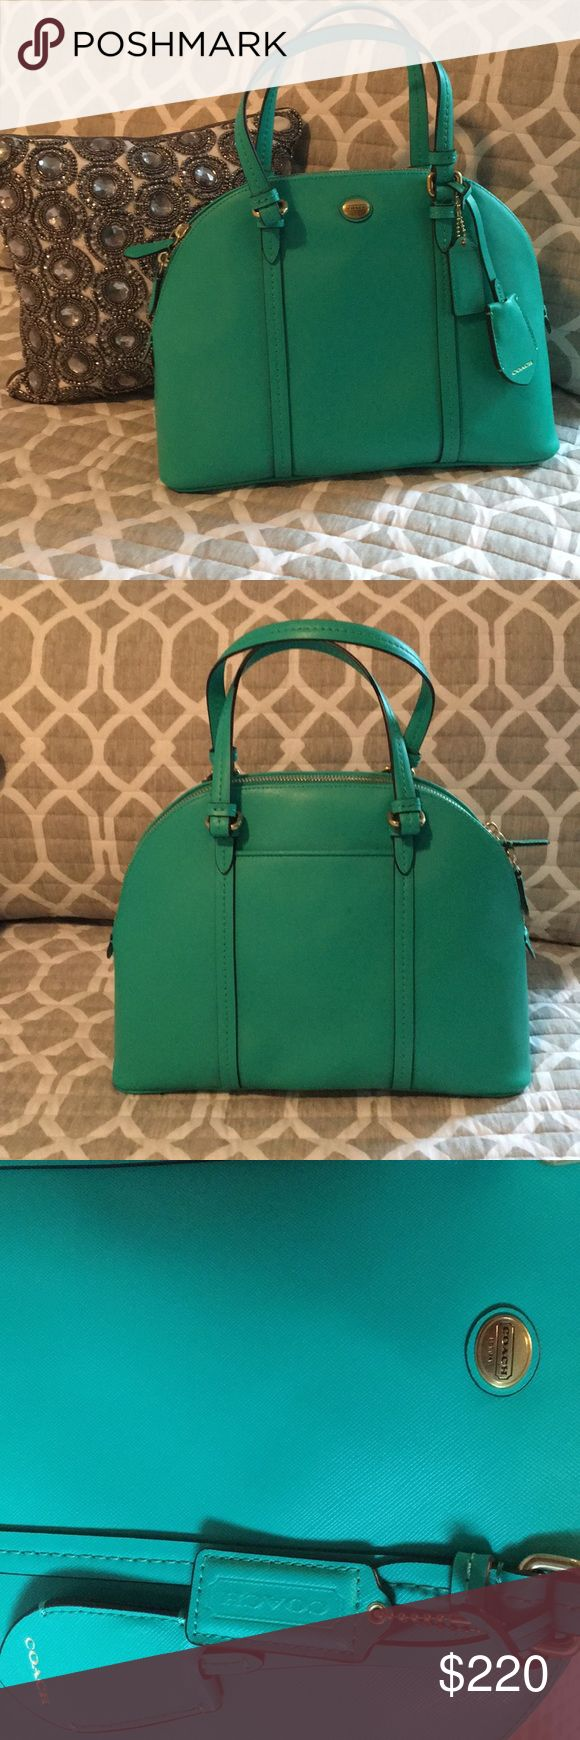 Coach Peyton Leather Cora Domed Satchel Satchel in Jade and Gold. Never used! Sill have the tags and care instructions. Long strap for shoulder or cross body wear. Smoke free home! Purchased from Coach store, authentic. MFSRP $428.00 Paid 328.00 Coach Bags Satchels